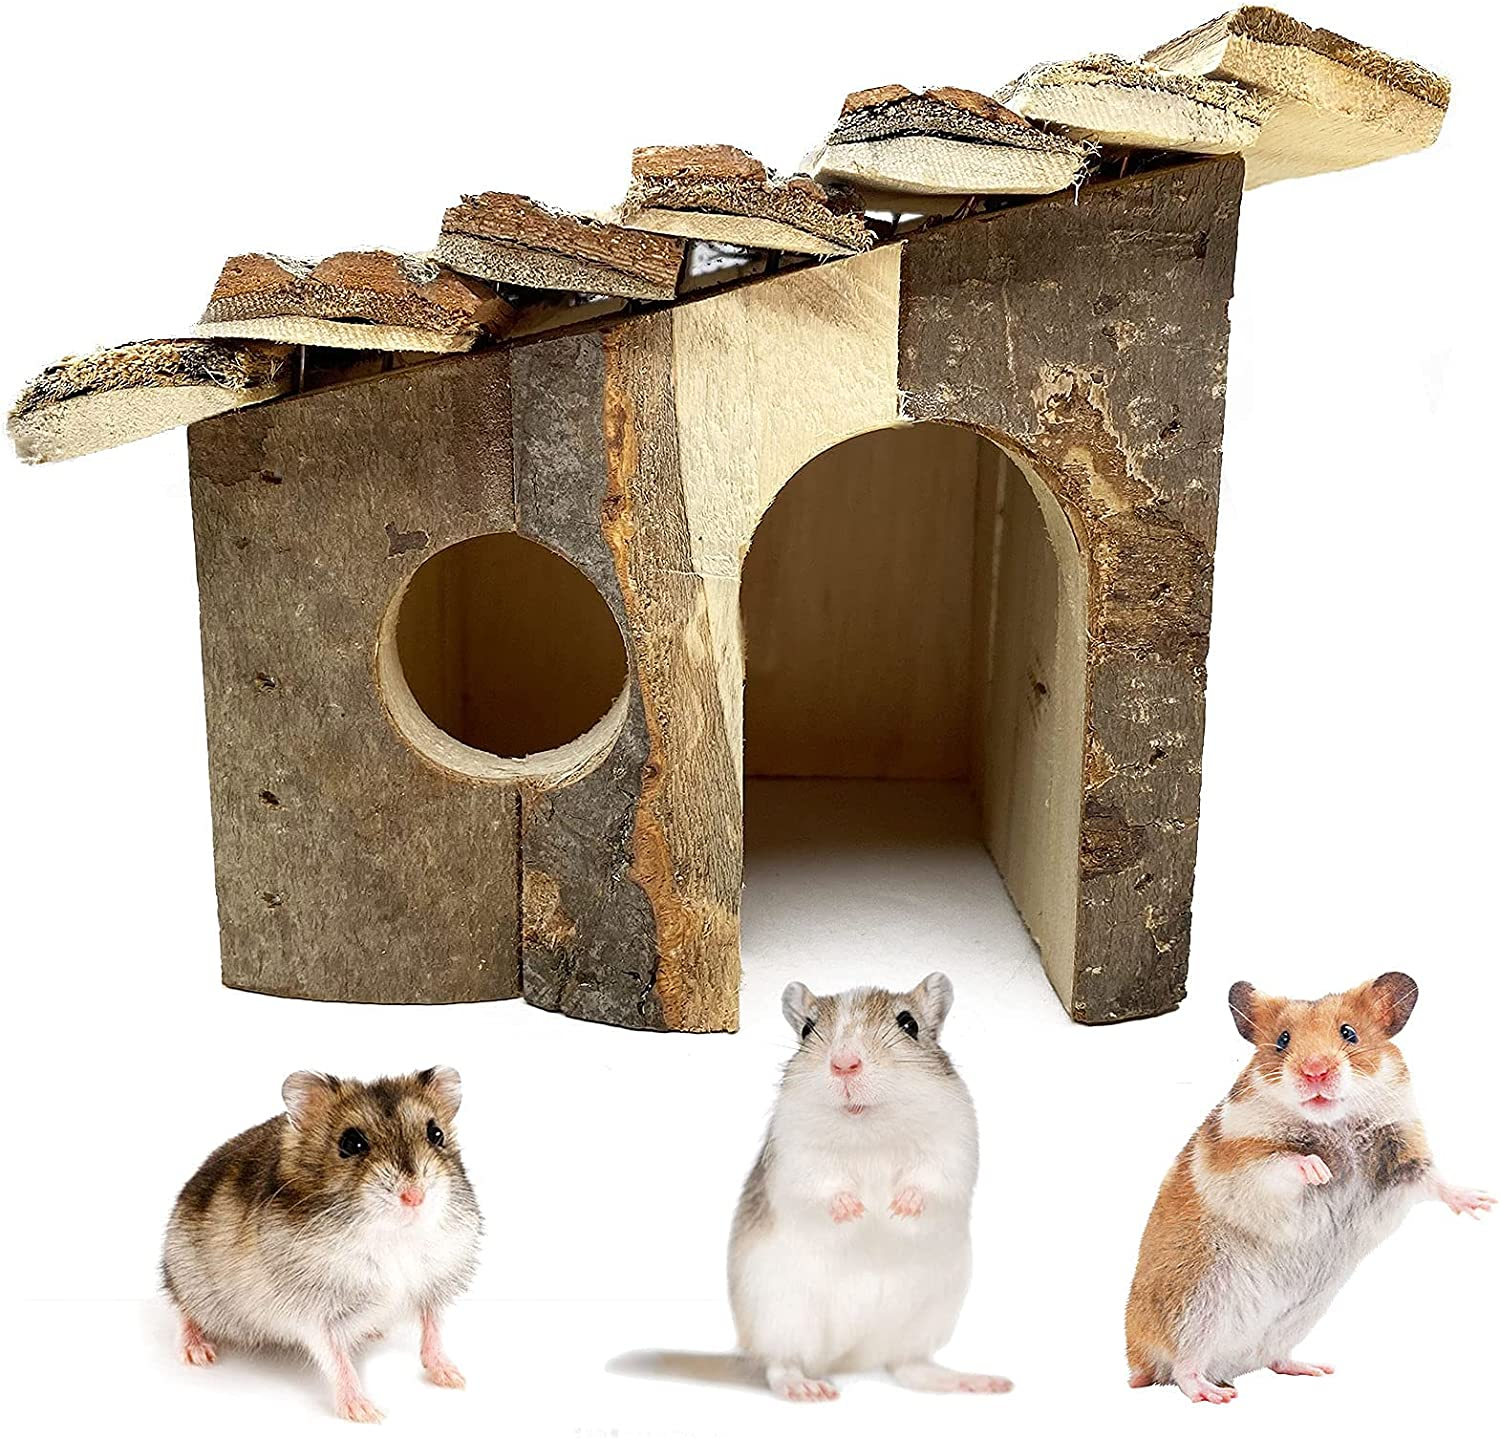 Toylord Hamster Wooden House Small Climbing Free Shipping Cheap Philadelphia Mall Bargain Gift Hideout Pet Hu Play